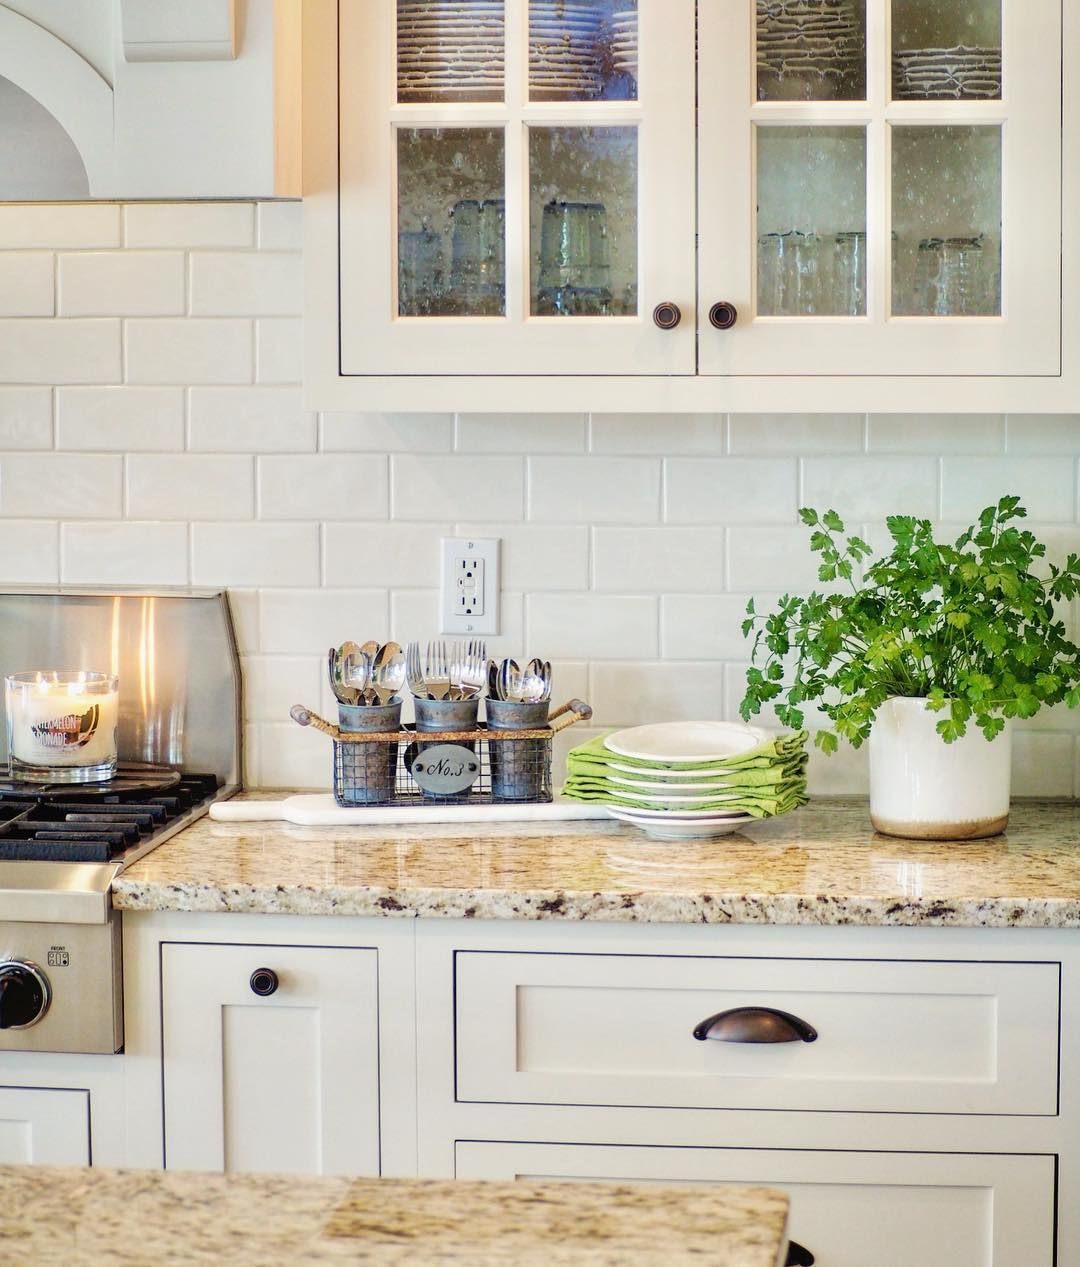 Dover White Is Closest Color Match To The Cabinets And Oil Rubbed Bronze Pulls Off White Kitchen Cabinets Kitchen Remodel Kitchen Renovation